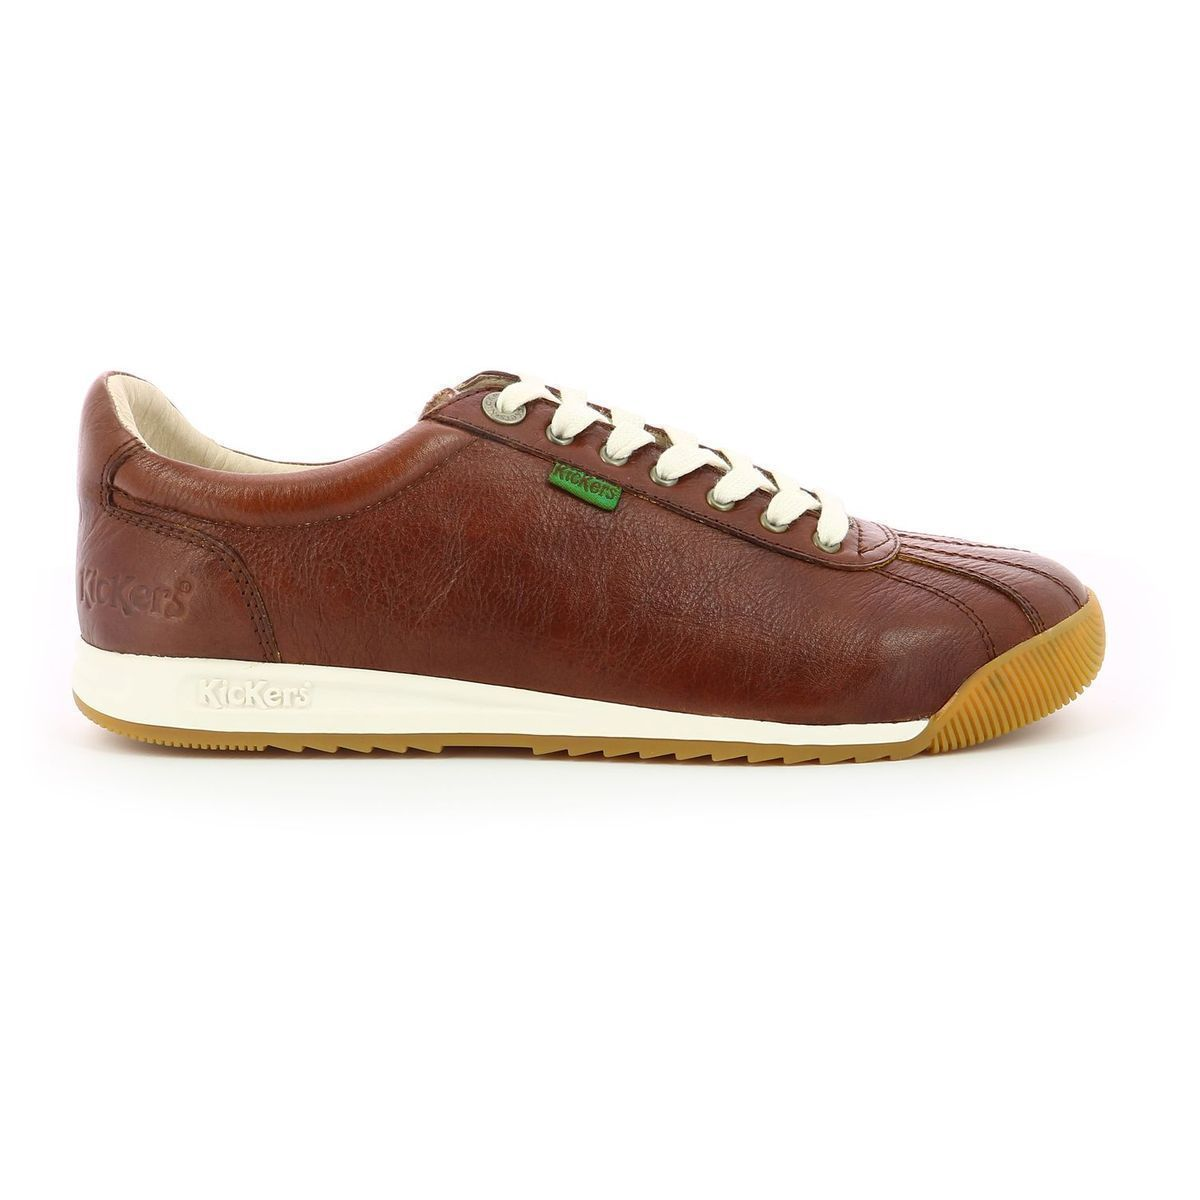 DISRUPTOR LOW WMN KICK 7:MARRON/CUIR/CUIR/CREPE/Marron